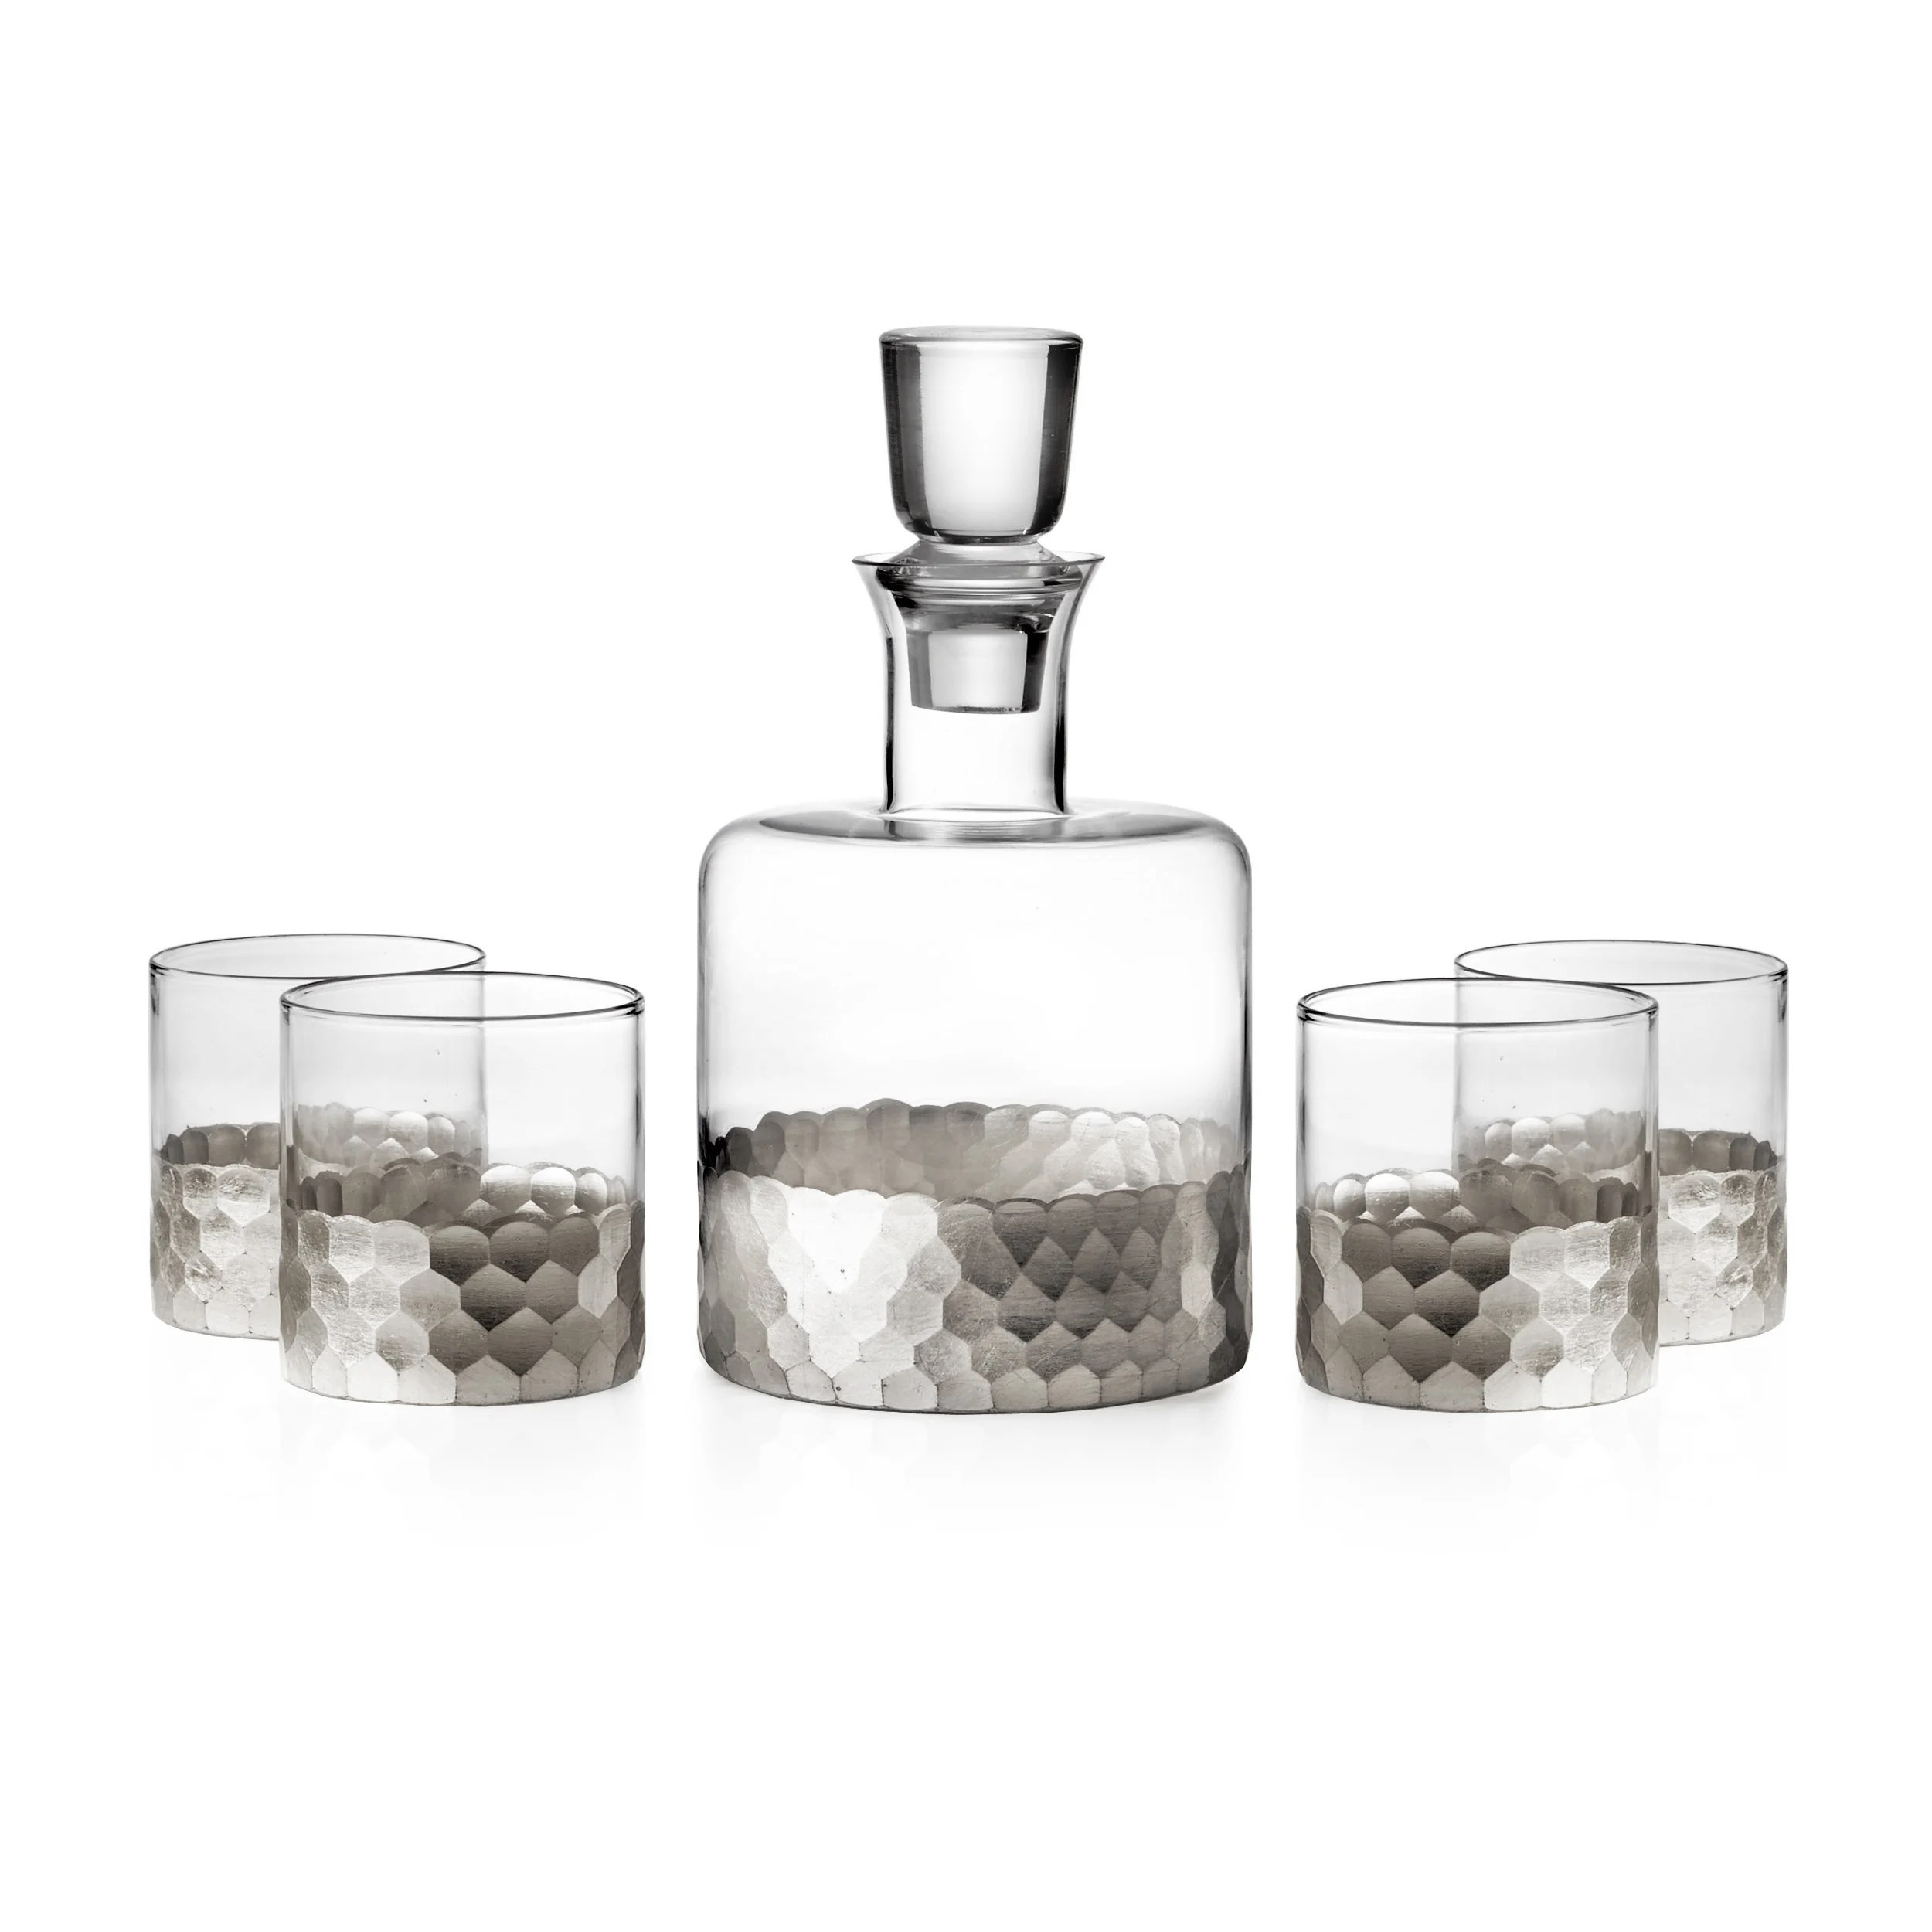 Whiskey Set Fitz And Floyd Daphne 5 Piece Whiskey Set